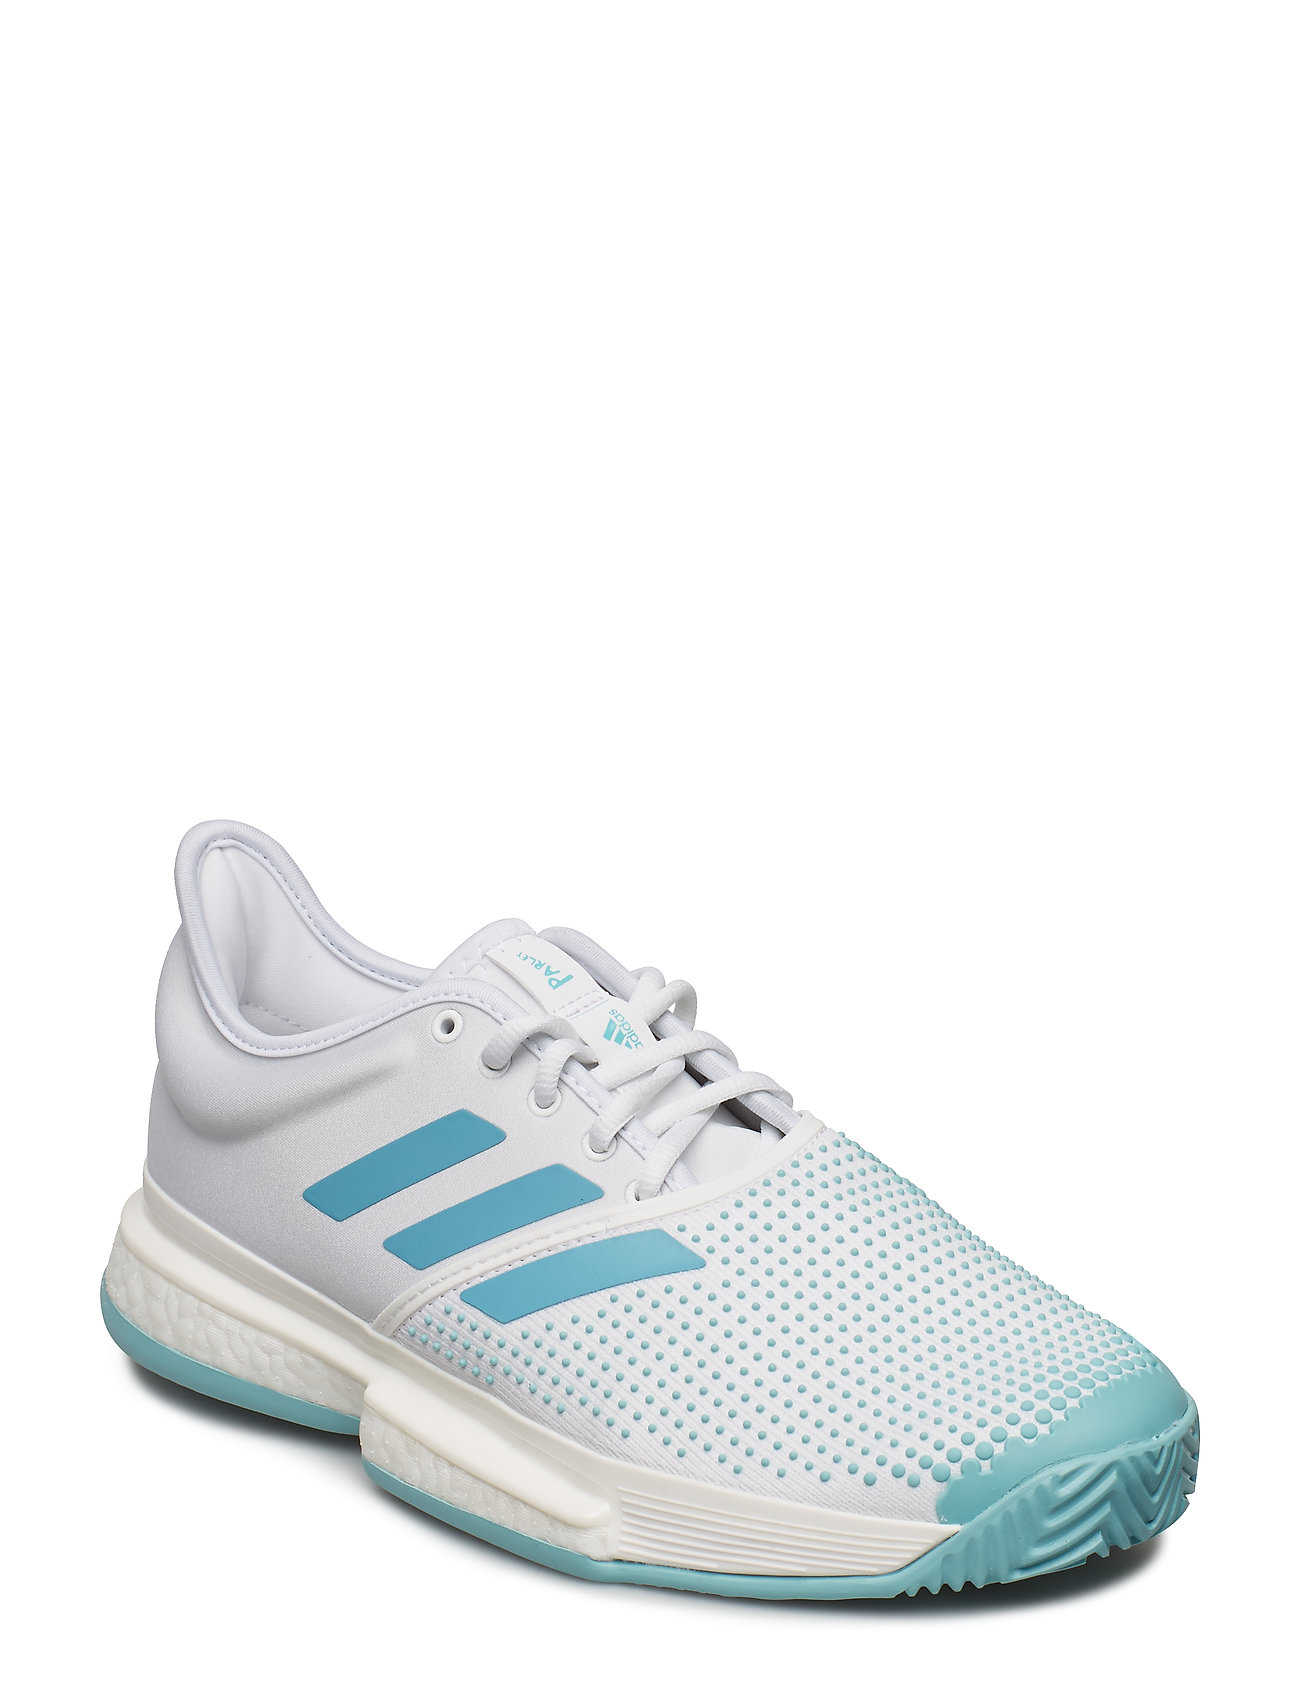 sports shoes 45972 55c8c SOLECOURT BOOST X PARLEY M